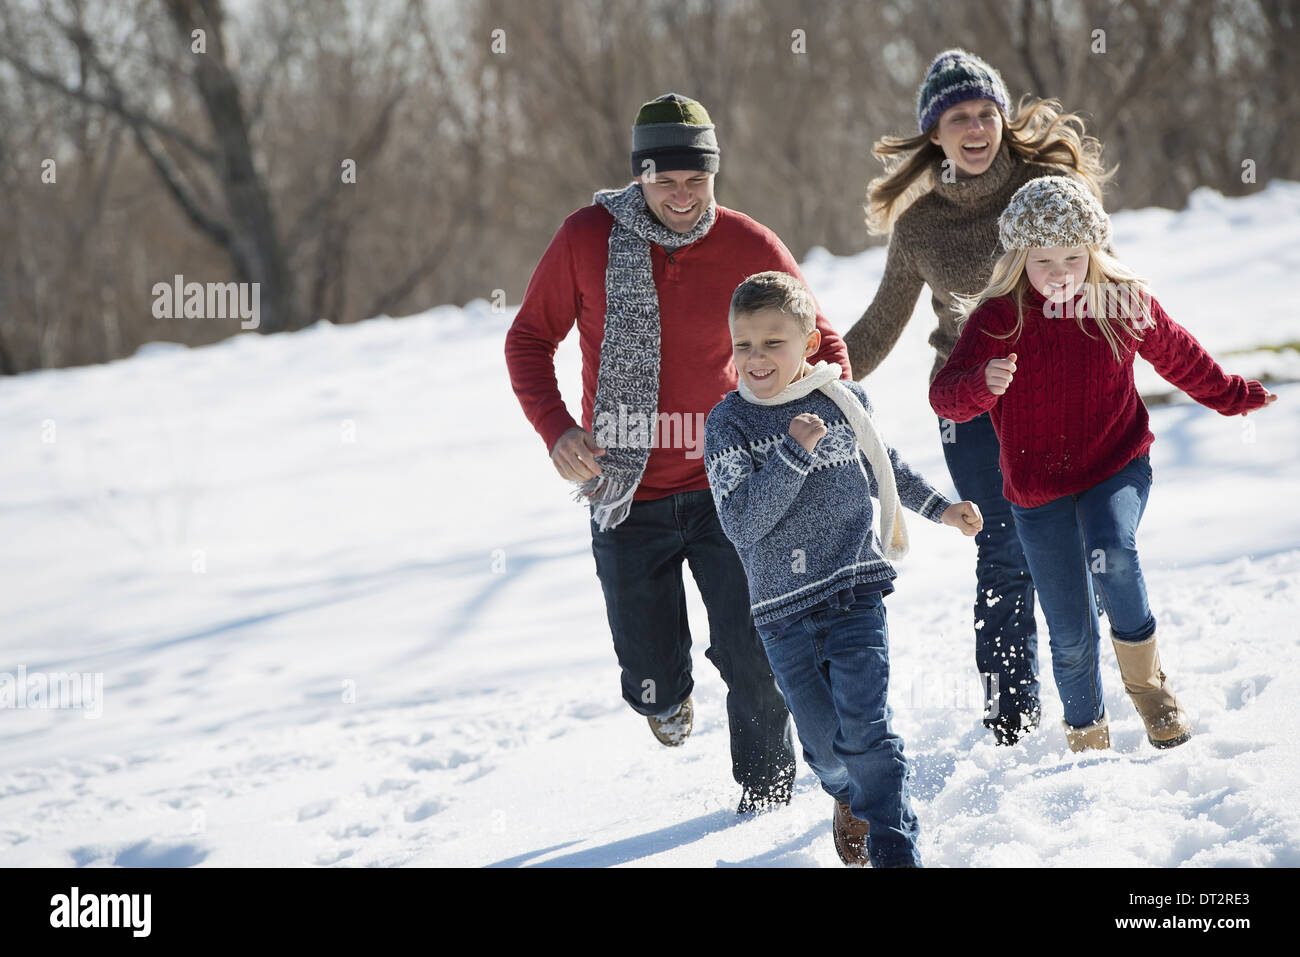 Winter scenery with snow on the ground Family walk Two adults chasing two children - Stock Image